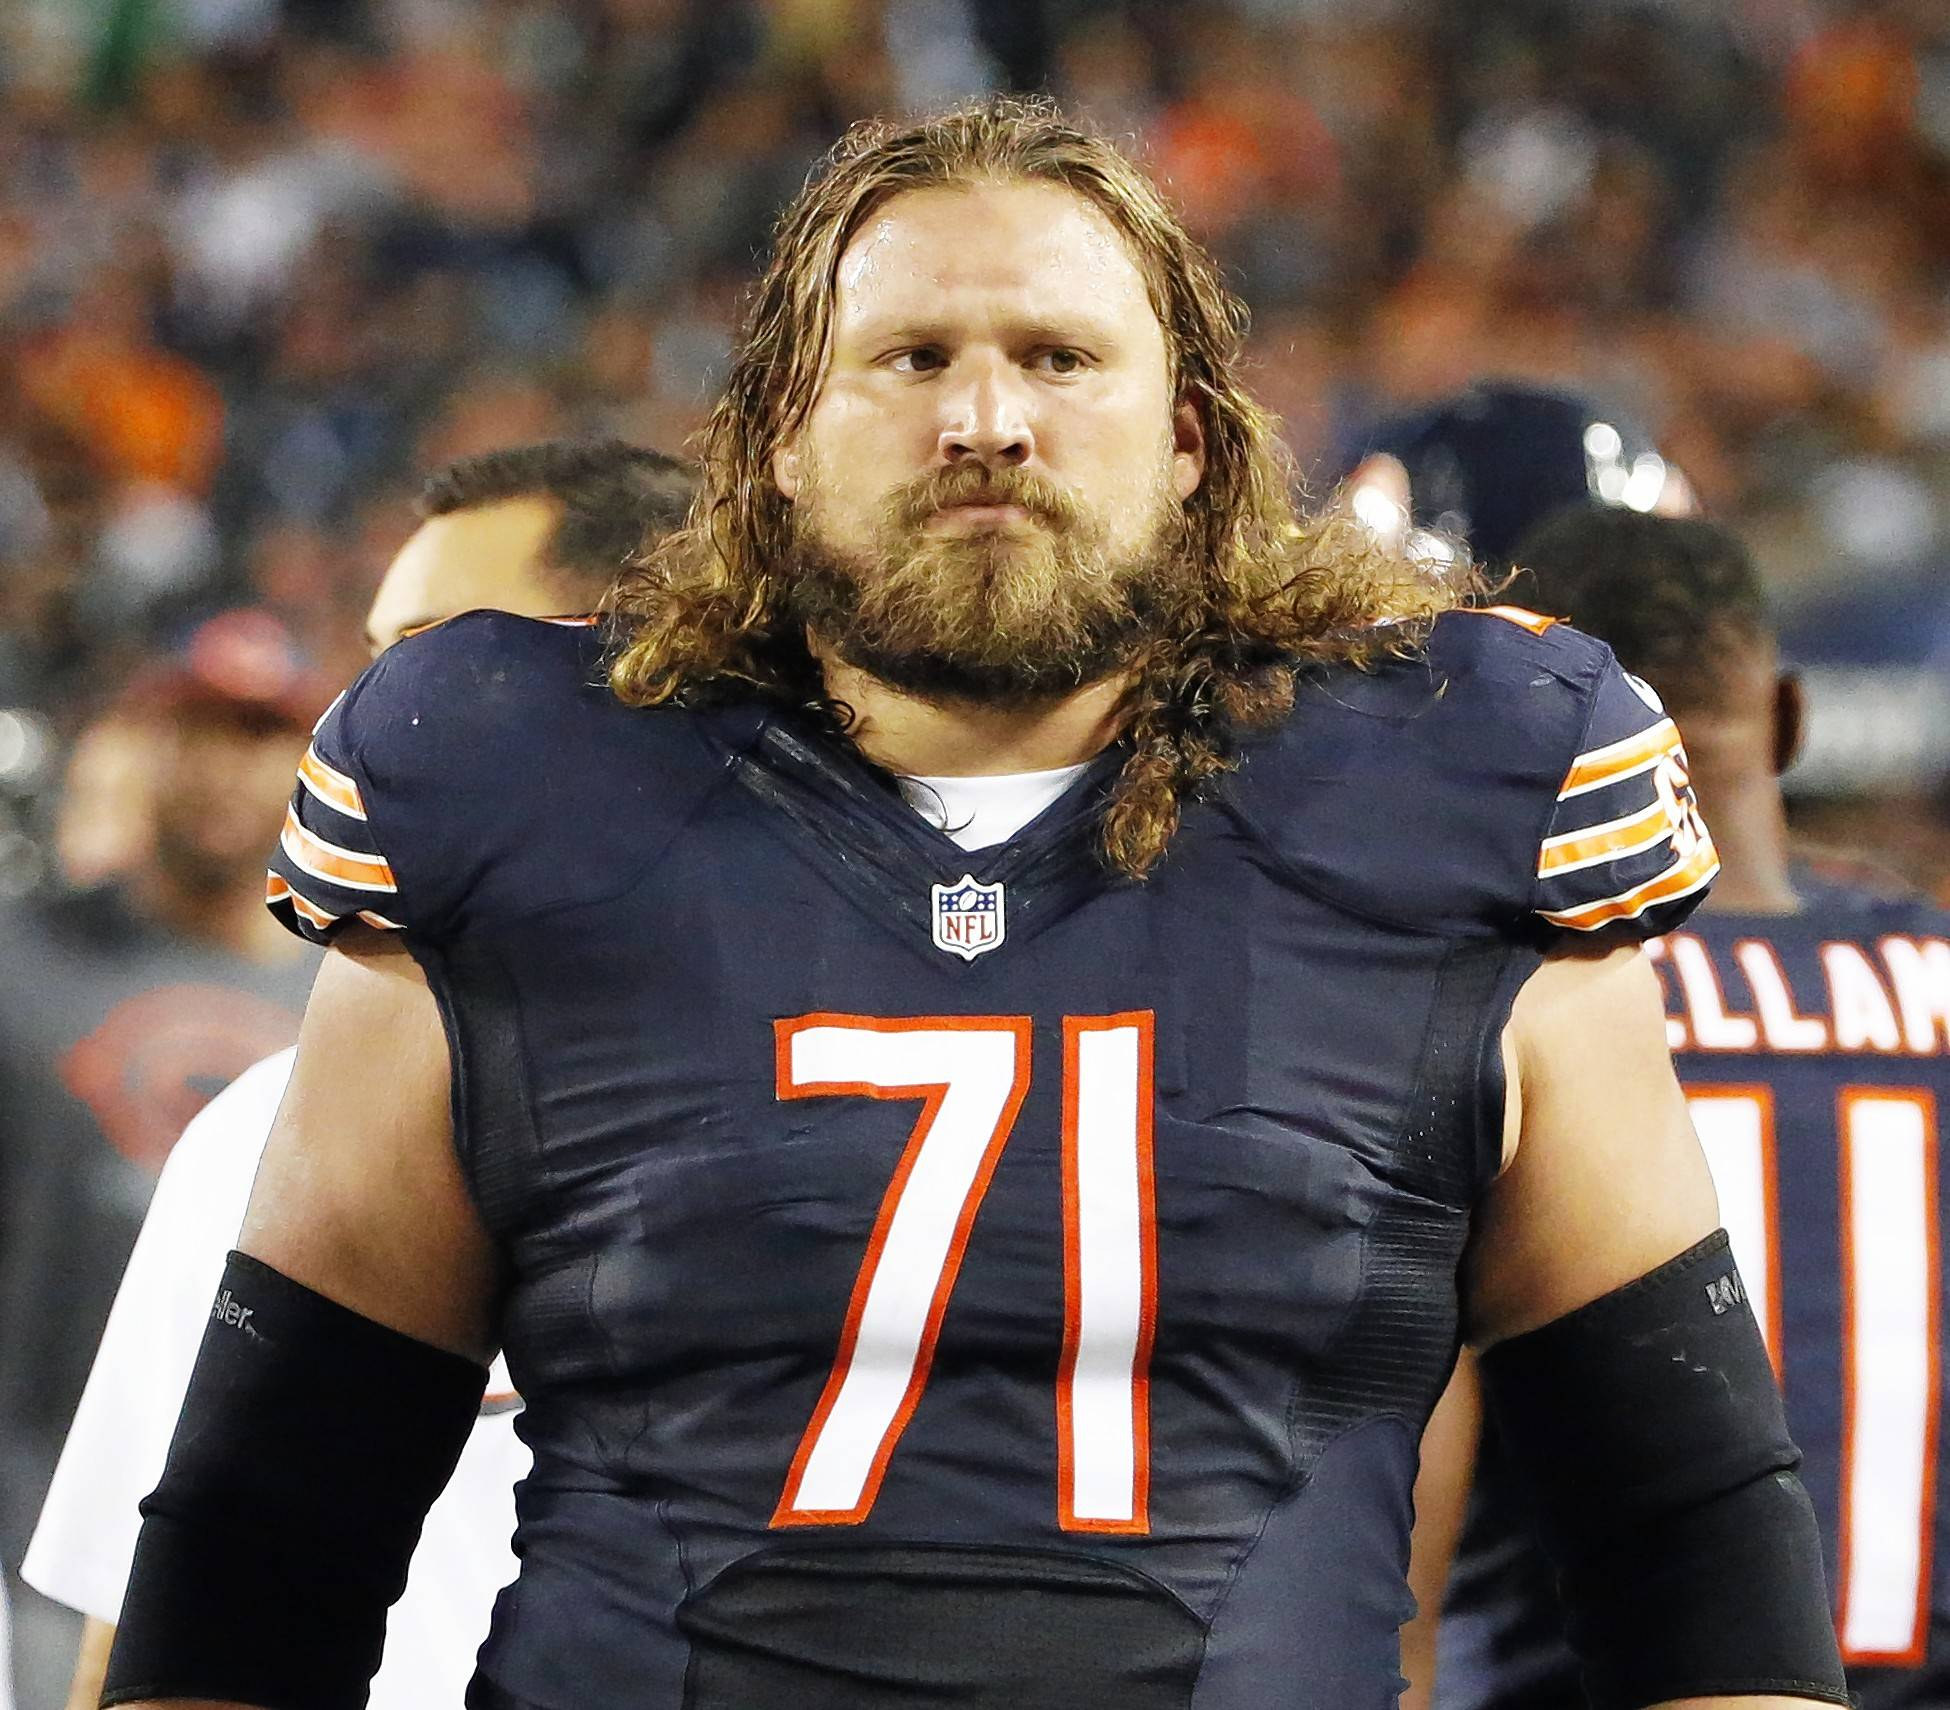 Chicago Bears guard Josh Sitton was named to the NFL Pro Bowl on Monday.